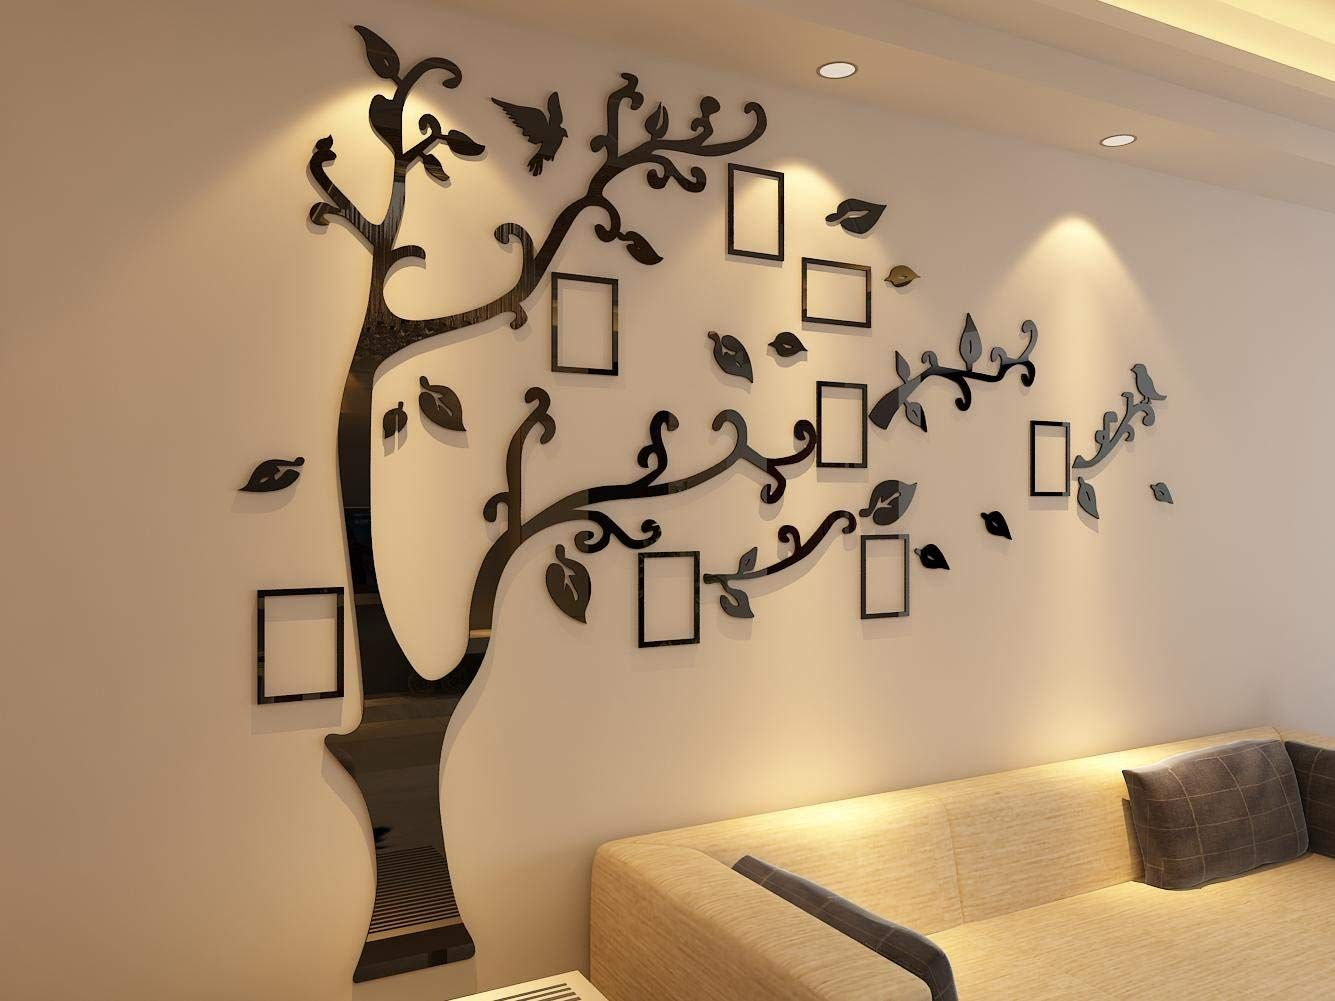 3d Picture Frames Tree Wall Murals For Living Room Bedroom Sofa Backdrop Tv Wall Background In 2020 Wall Decor Decals Tree Wall Murals Wall Decals Living Room #wall #art #decals #for #living #room